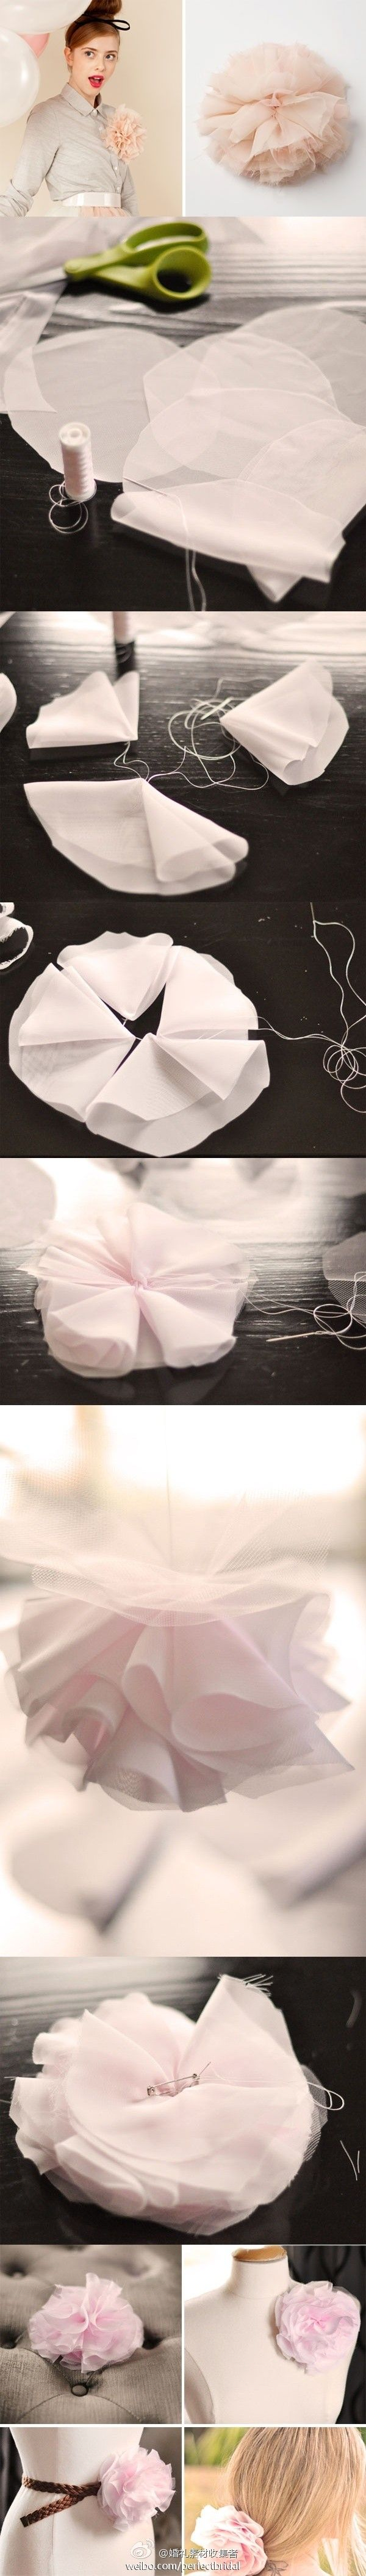 DIY fabric flower pin/broach, belt, ect.